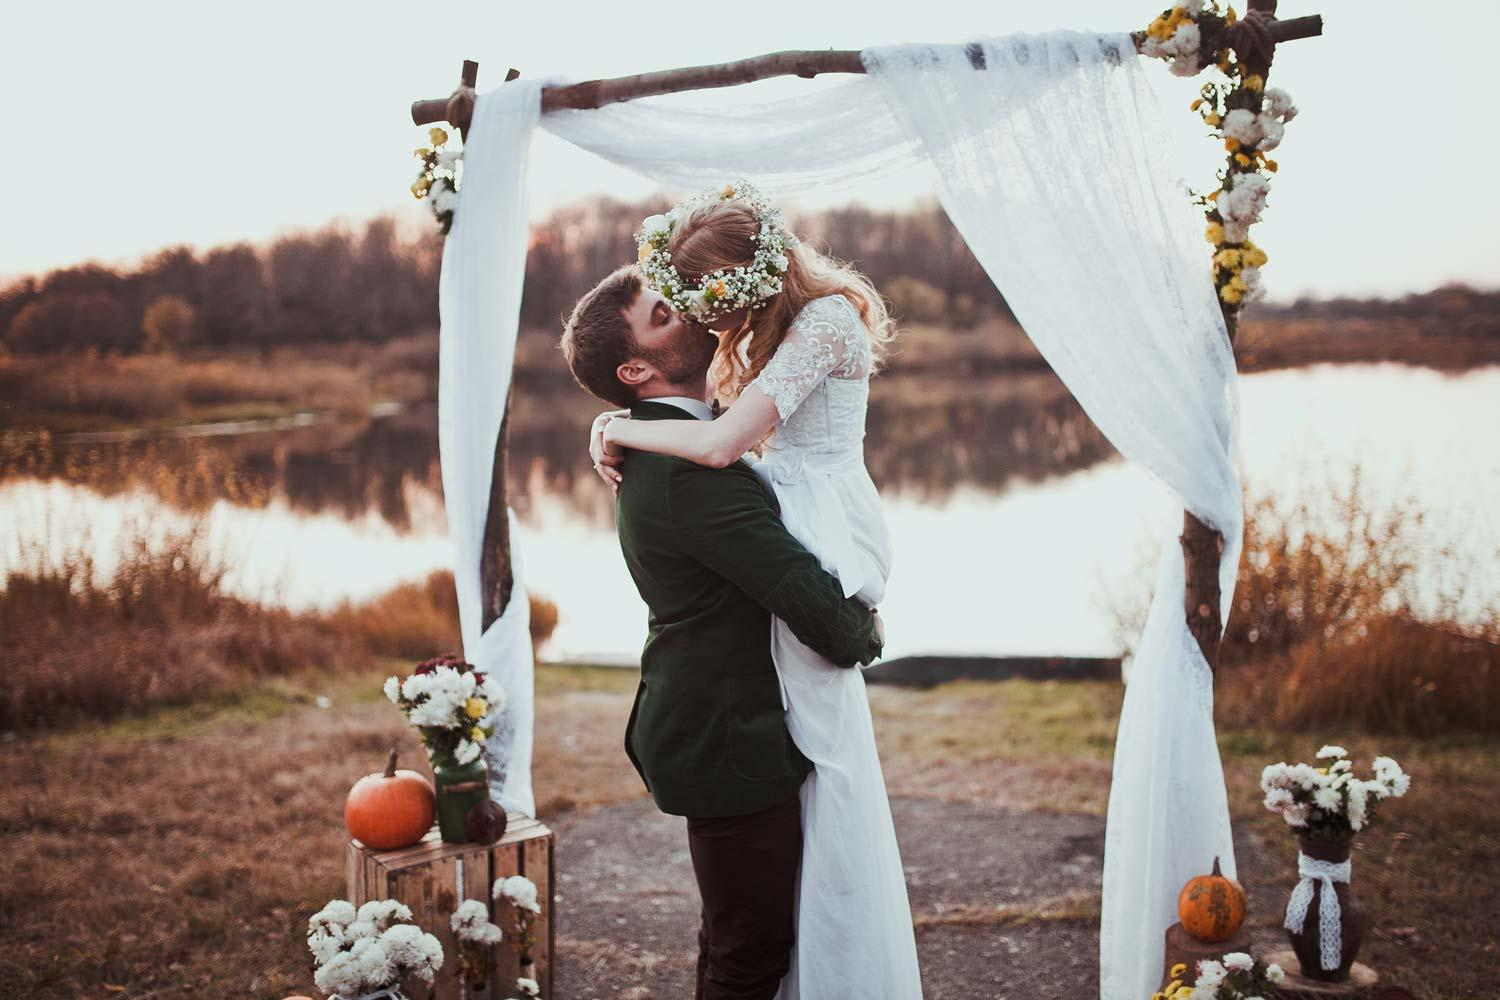 D:\Работа\SEO\GUEST POSTS\POSTS 2020\24.02.2020\Ryan 7 Pros and Cons of Getting Married In College\shutterstock_580247308.jpg